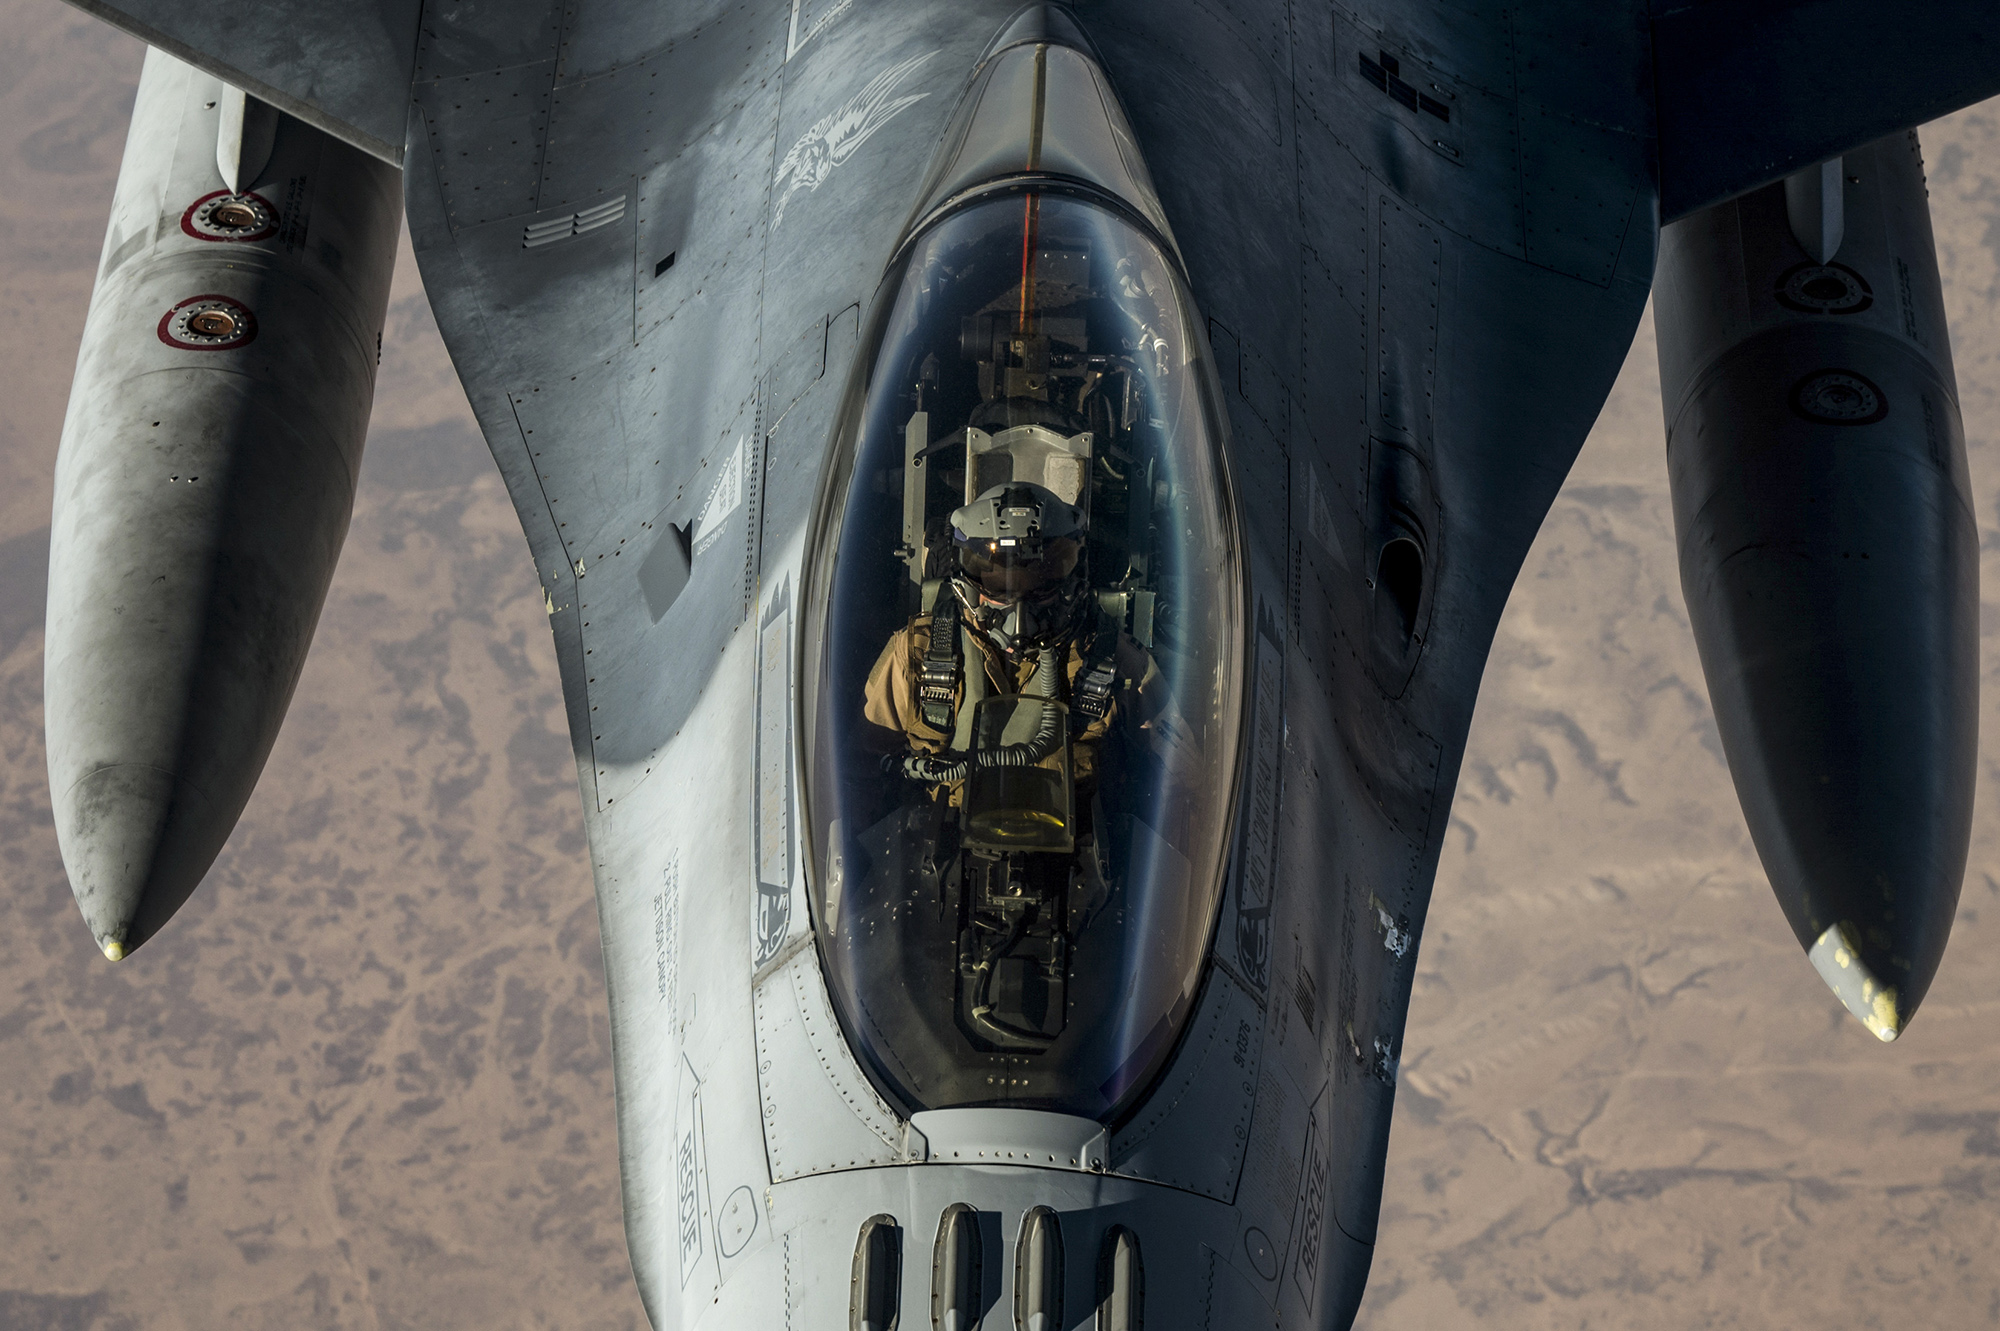 A U.S. Air Force KC-10 Extender conducts aerial refueling with an F-16 Fighting Falcon in the U.S. Central Command area of responsibility Nov. 30, 2020. (Staff Sgt. Sean Carnes/Air Force)